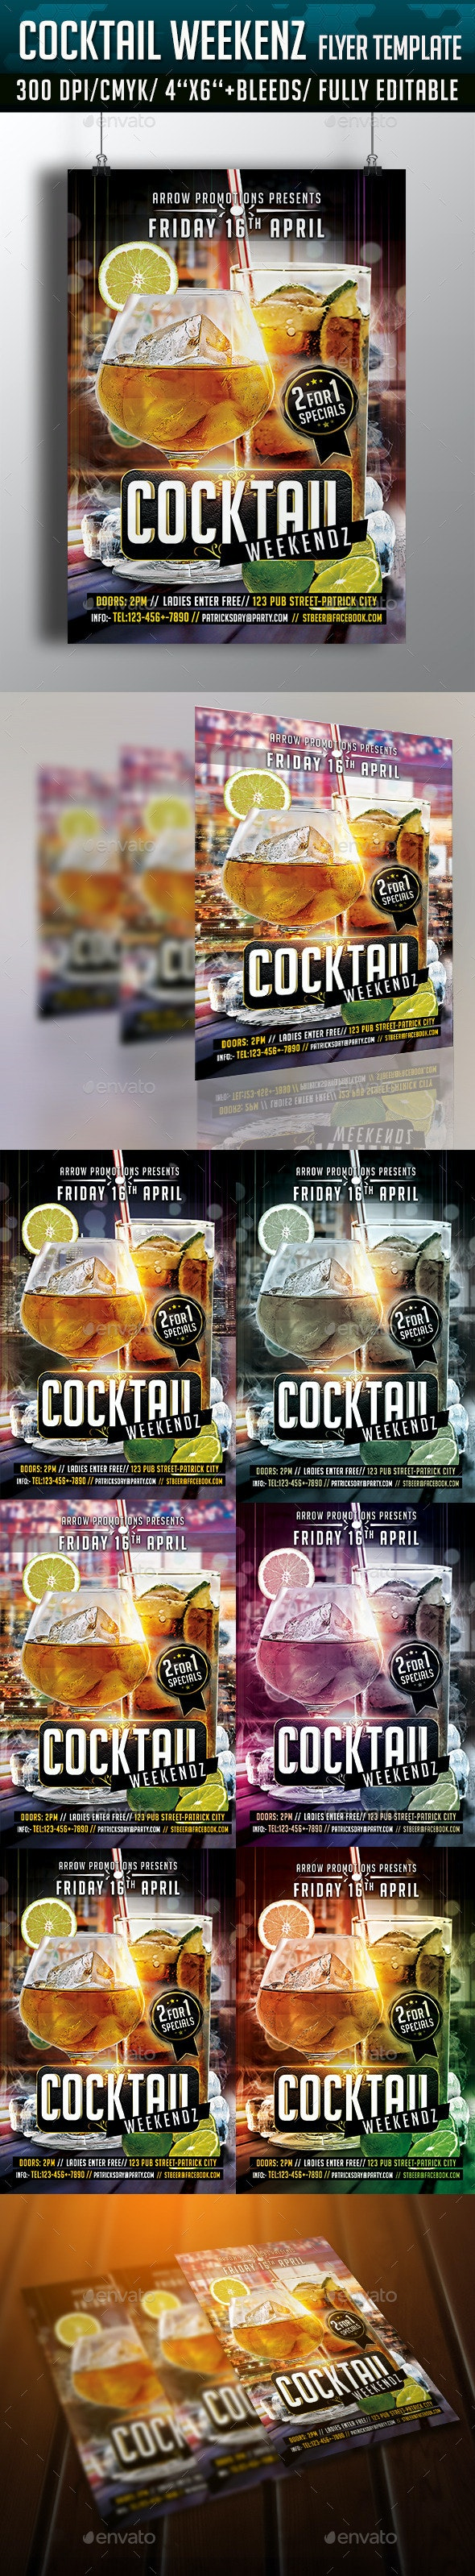 Cocktail Weekends Flyer Template - Clubs & Parties Events